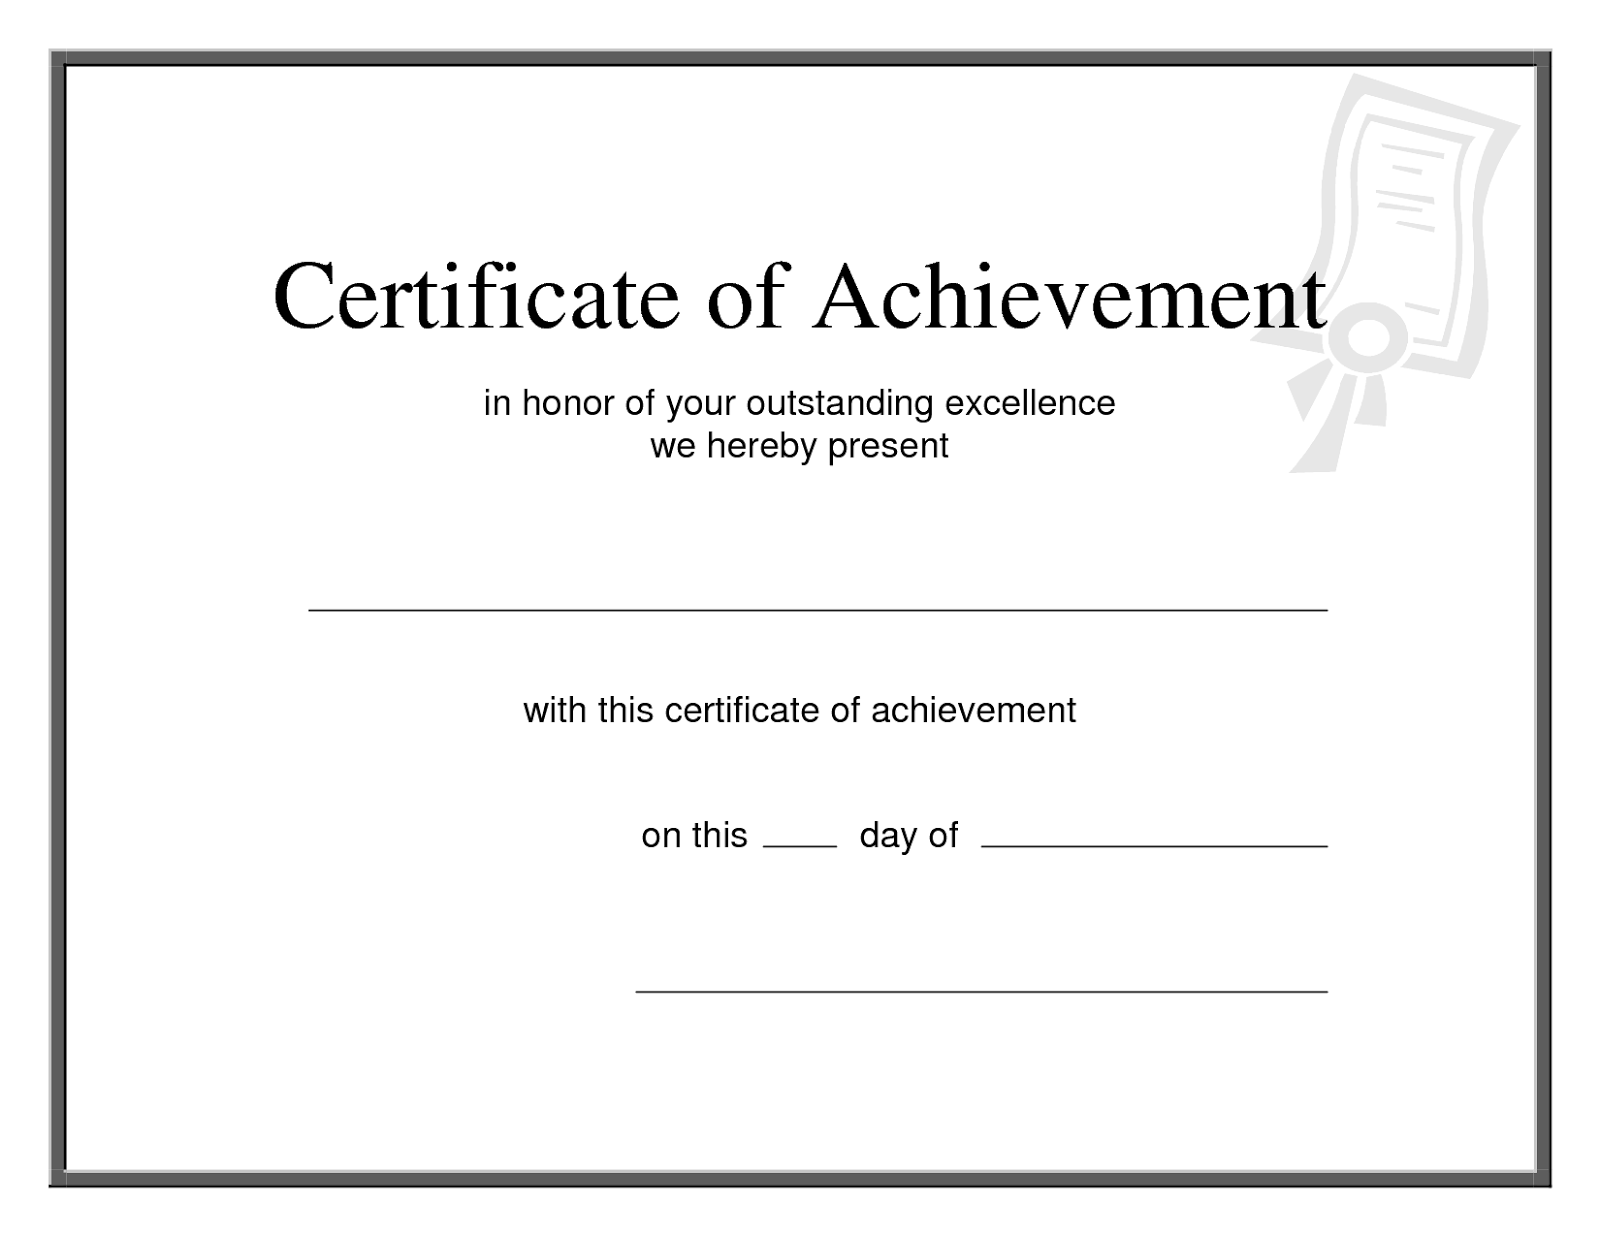 Microsoft certificate of achievement template apa templates microsoft certificate of achievement template yadclub Gallery